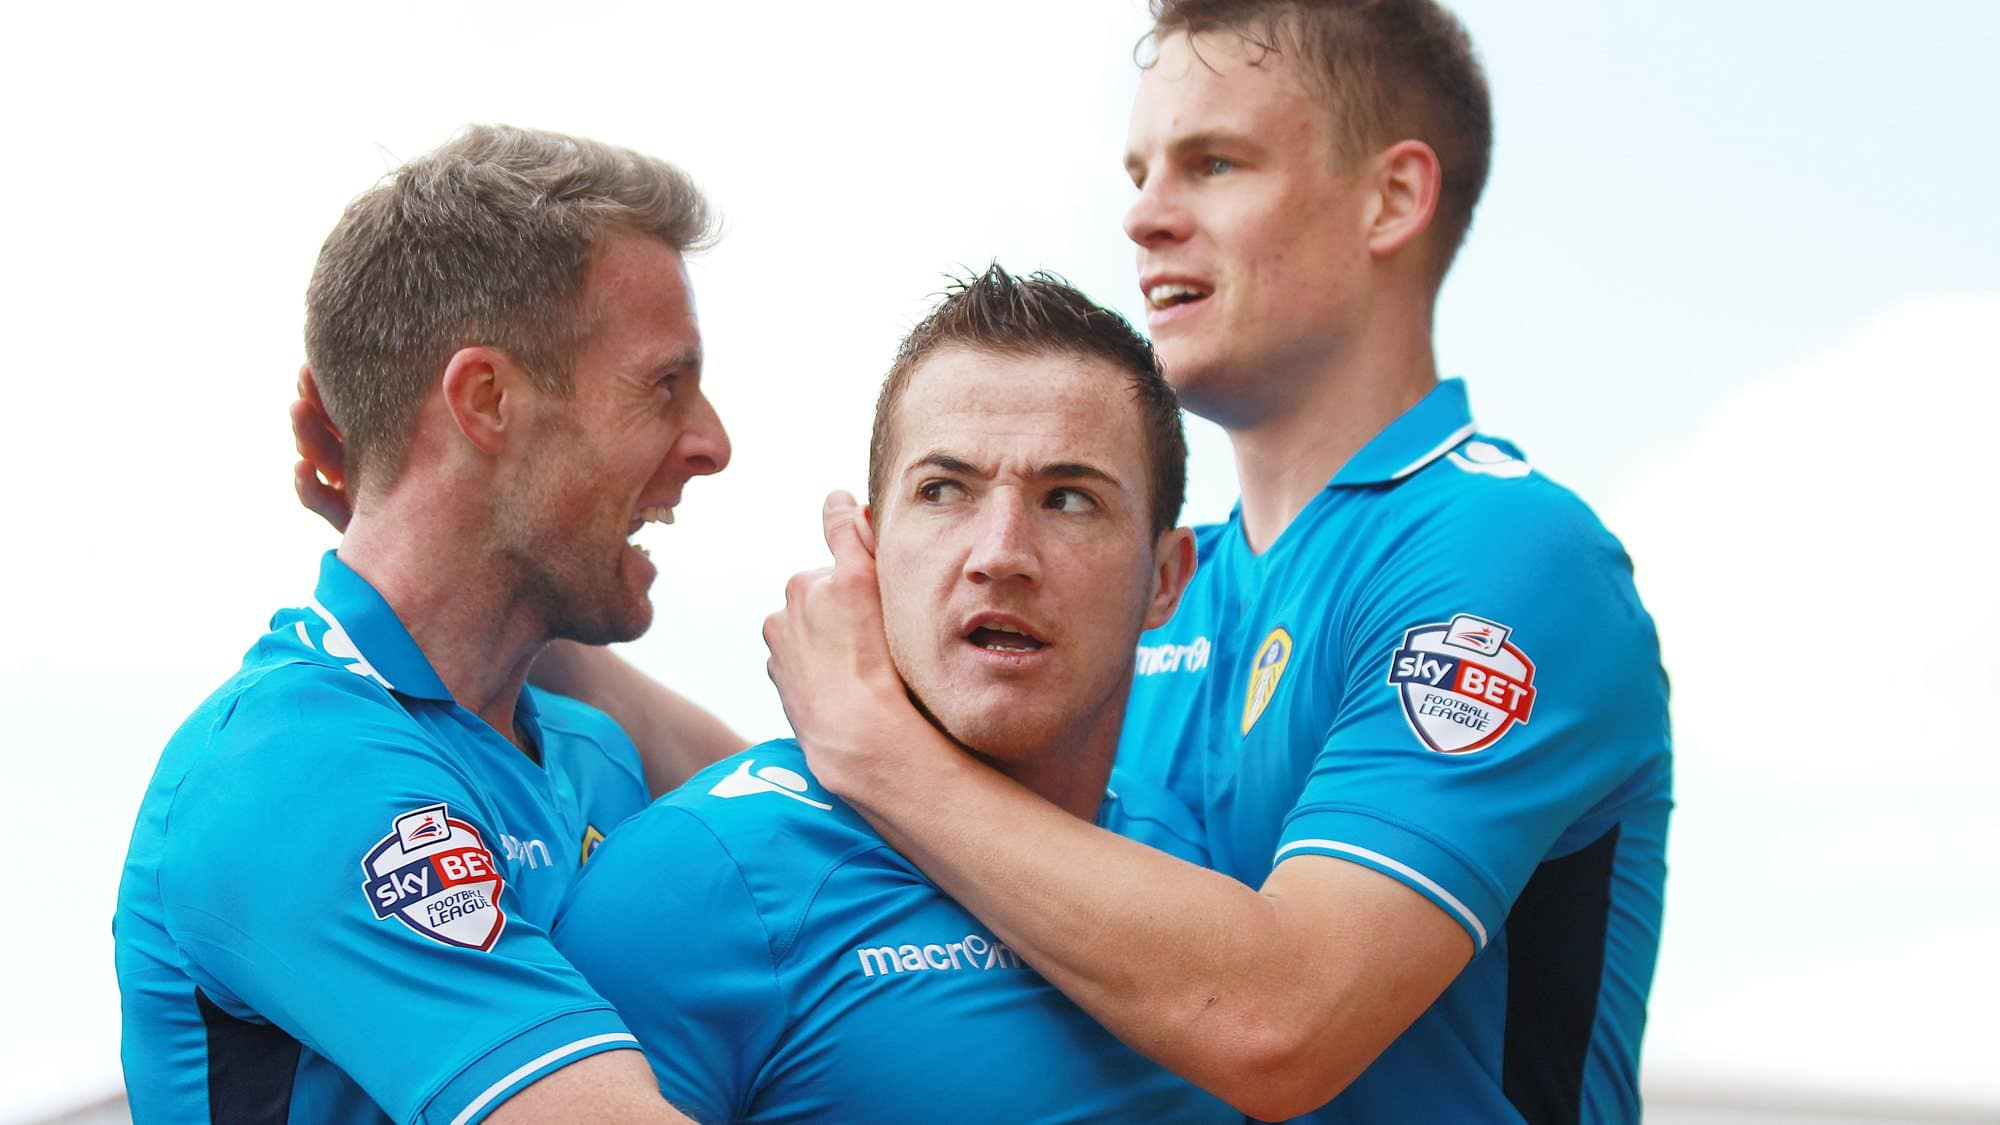 Ross McCormack looks angry about celebrating a goal, but Michael Tonge and Mathieu Smith look well chuffed